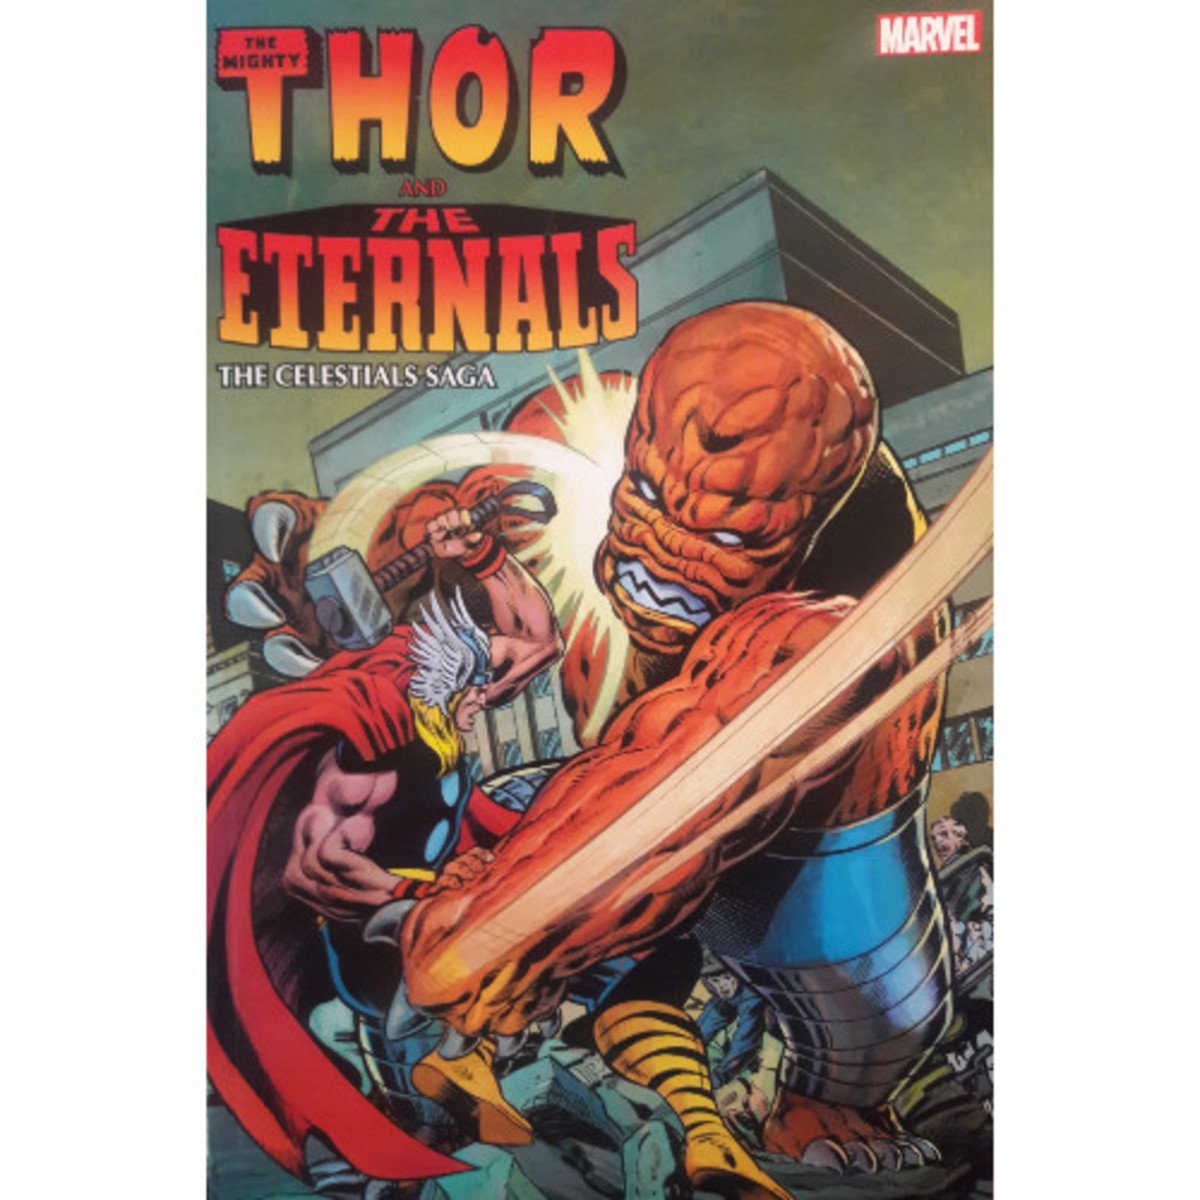 4-eternals-stories-to-read-before-you-see-their-marvel-cinematic-universe-debut